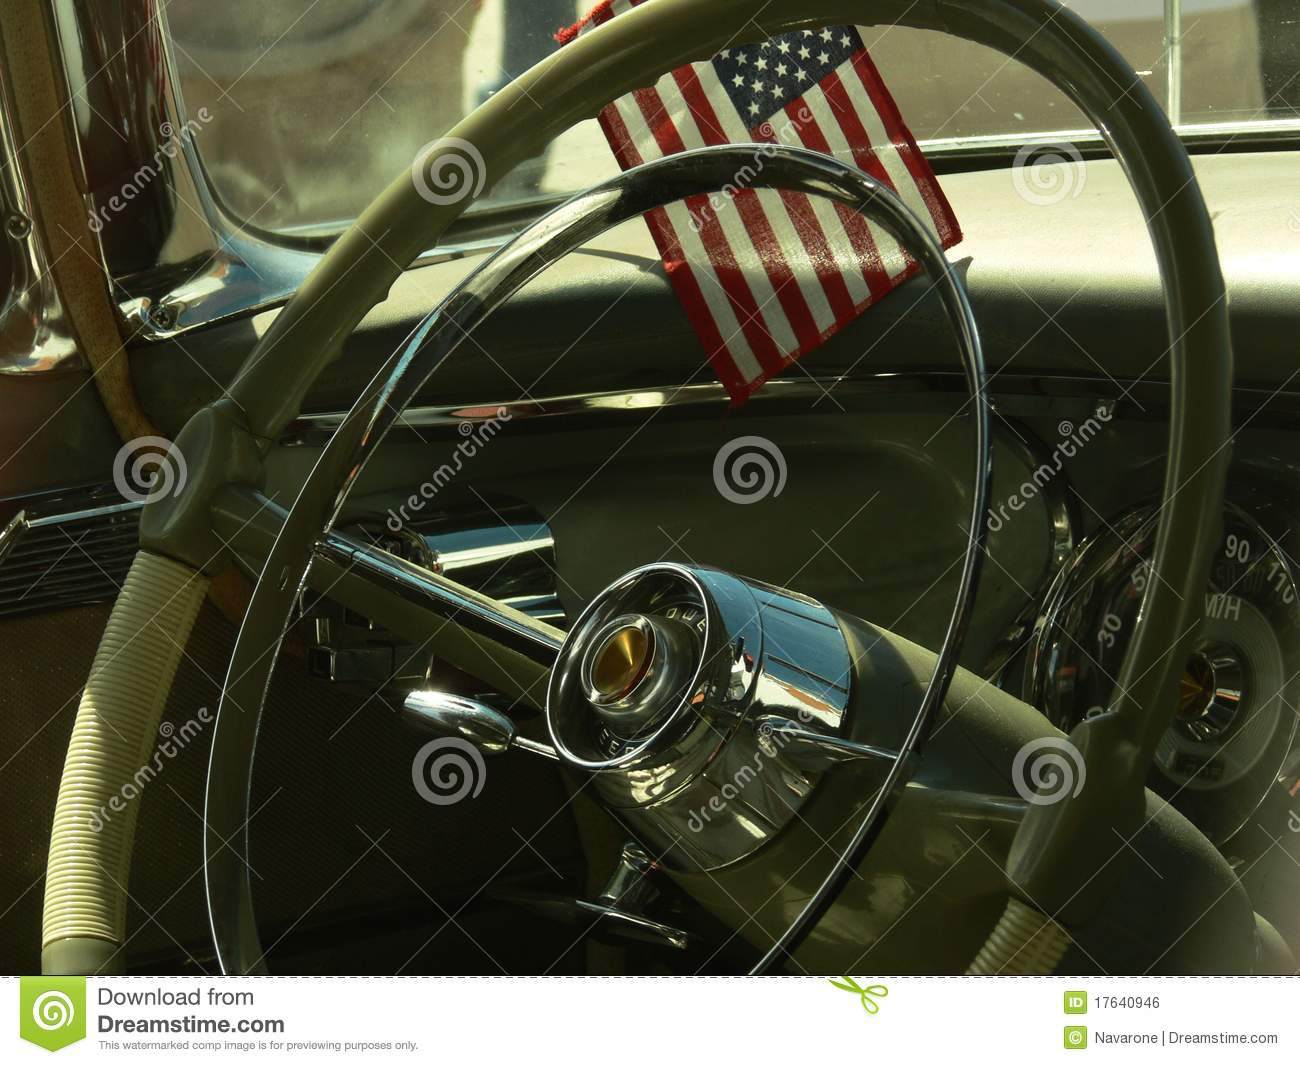 vintage car interior with flag royalty free stock image image 17640946. Black Bedroom Furniture Sets. Home Design Ideas